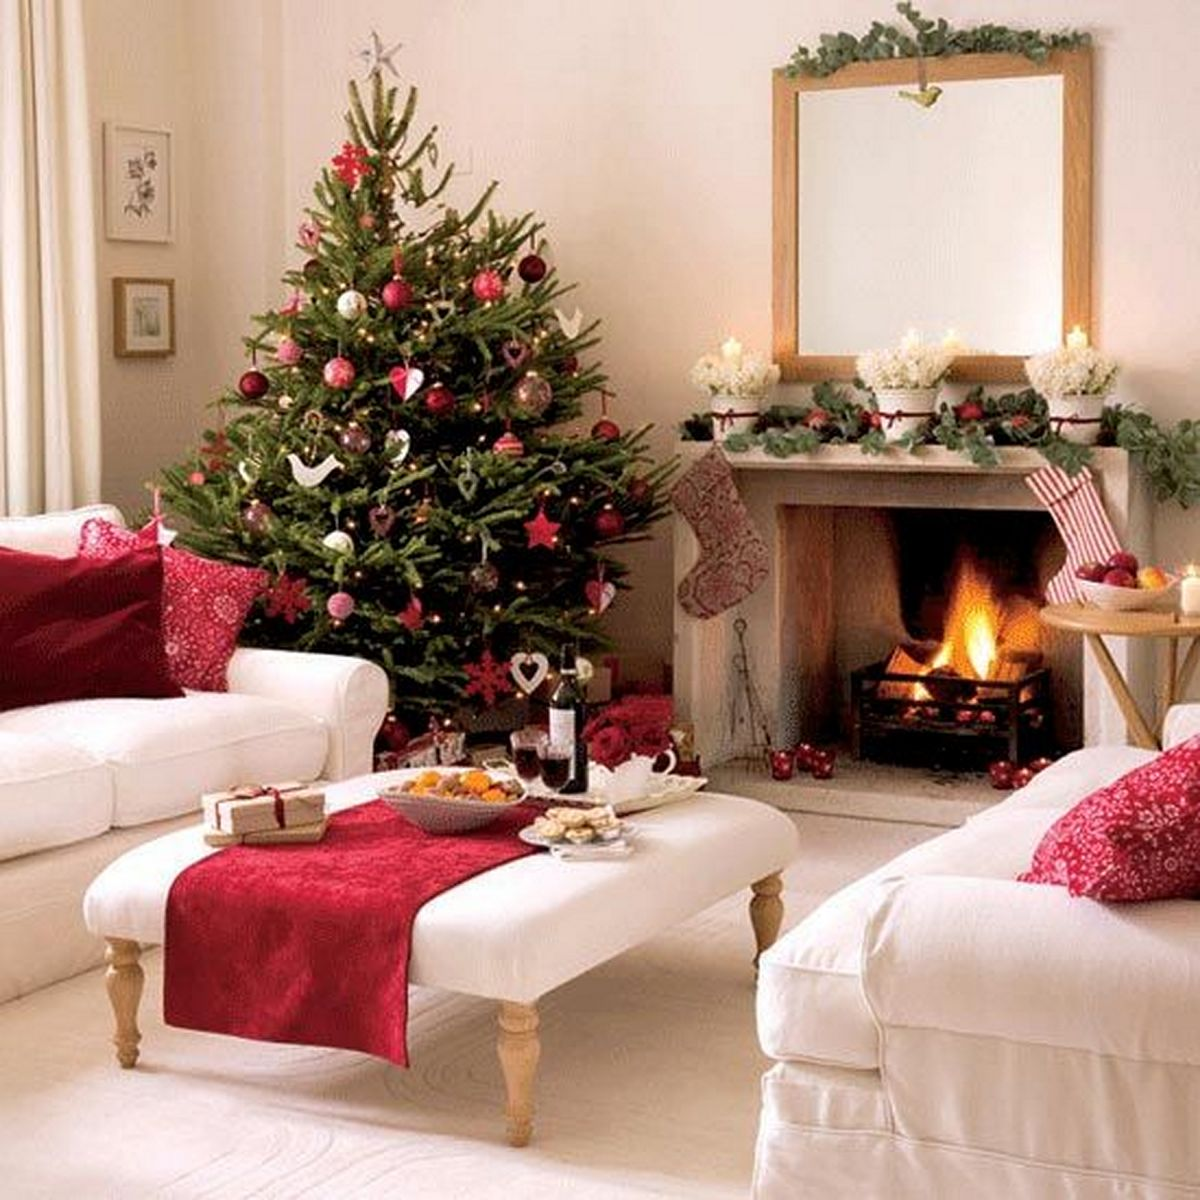 8971Tree-decorating-ideas-for-living-room-home-design-inspiration